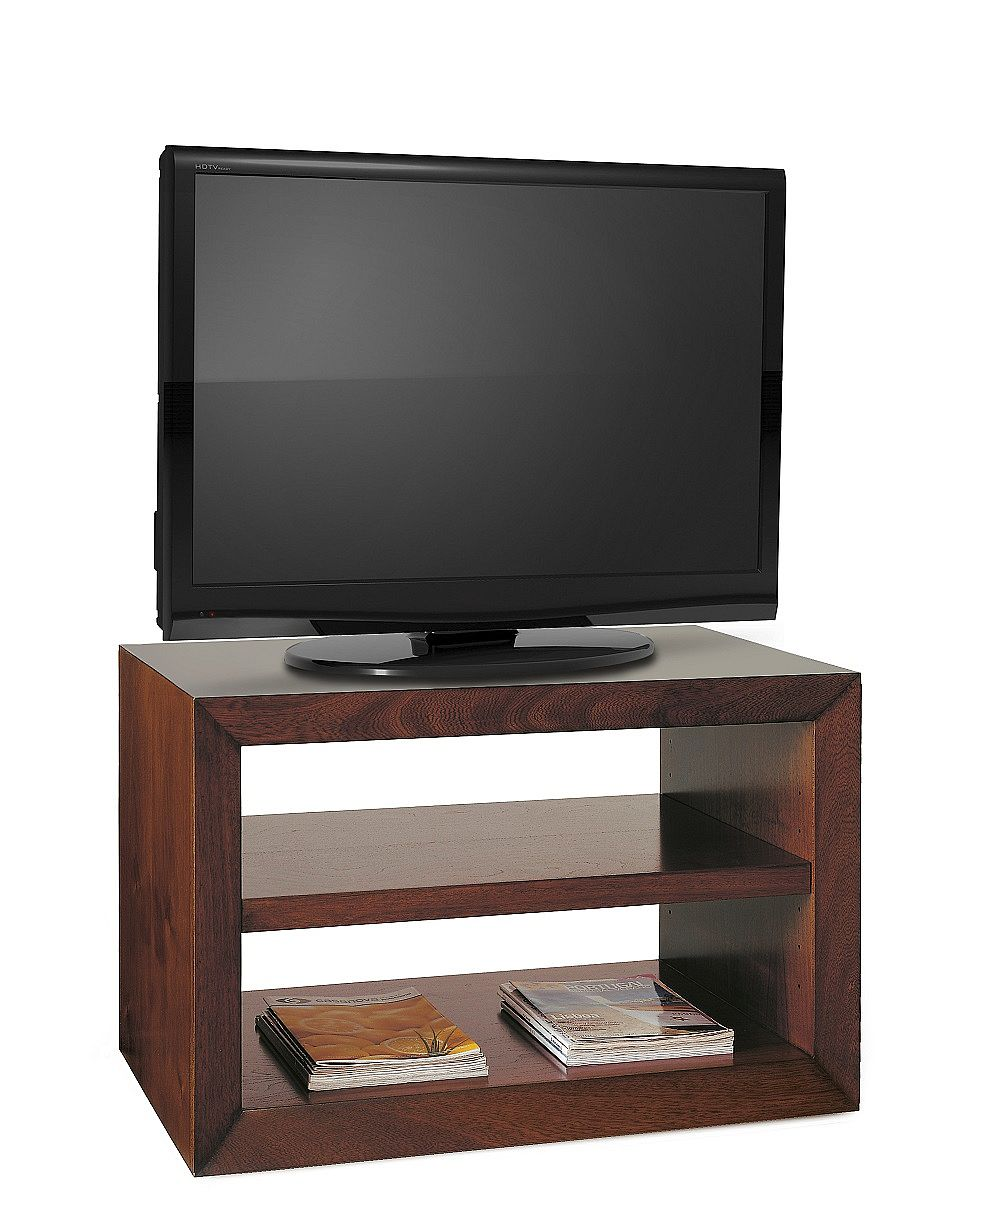 Movable Tv Stand Living Room Furniture Movable Tv Stand Living Room Furniture Movable Tv